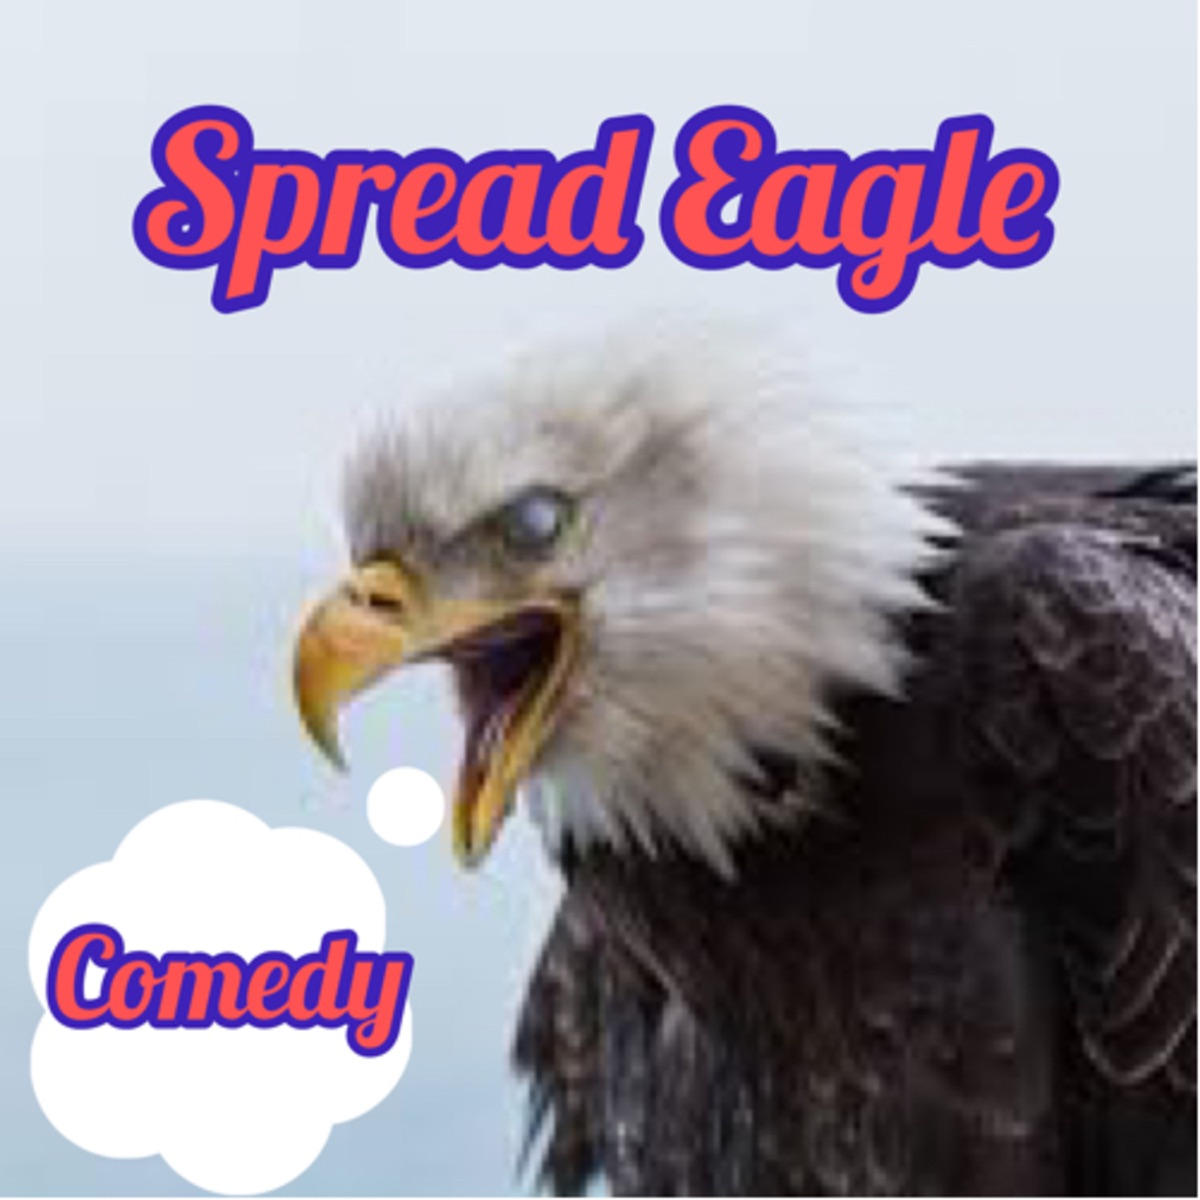 Spread Eagle Comedy Network